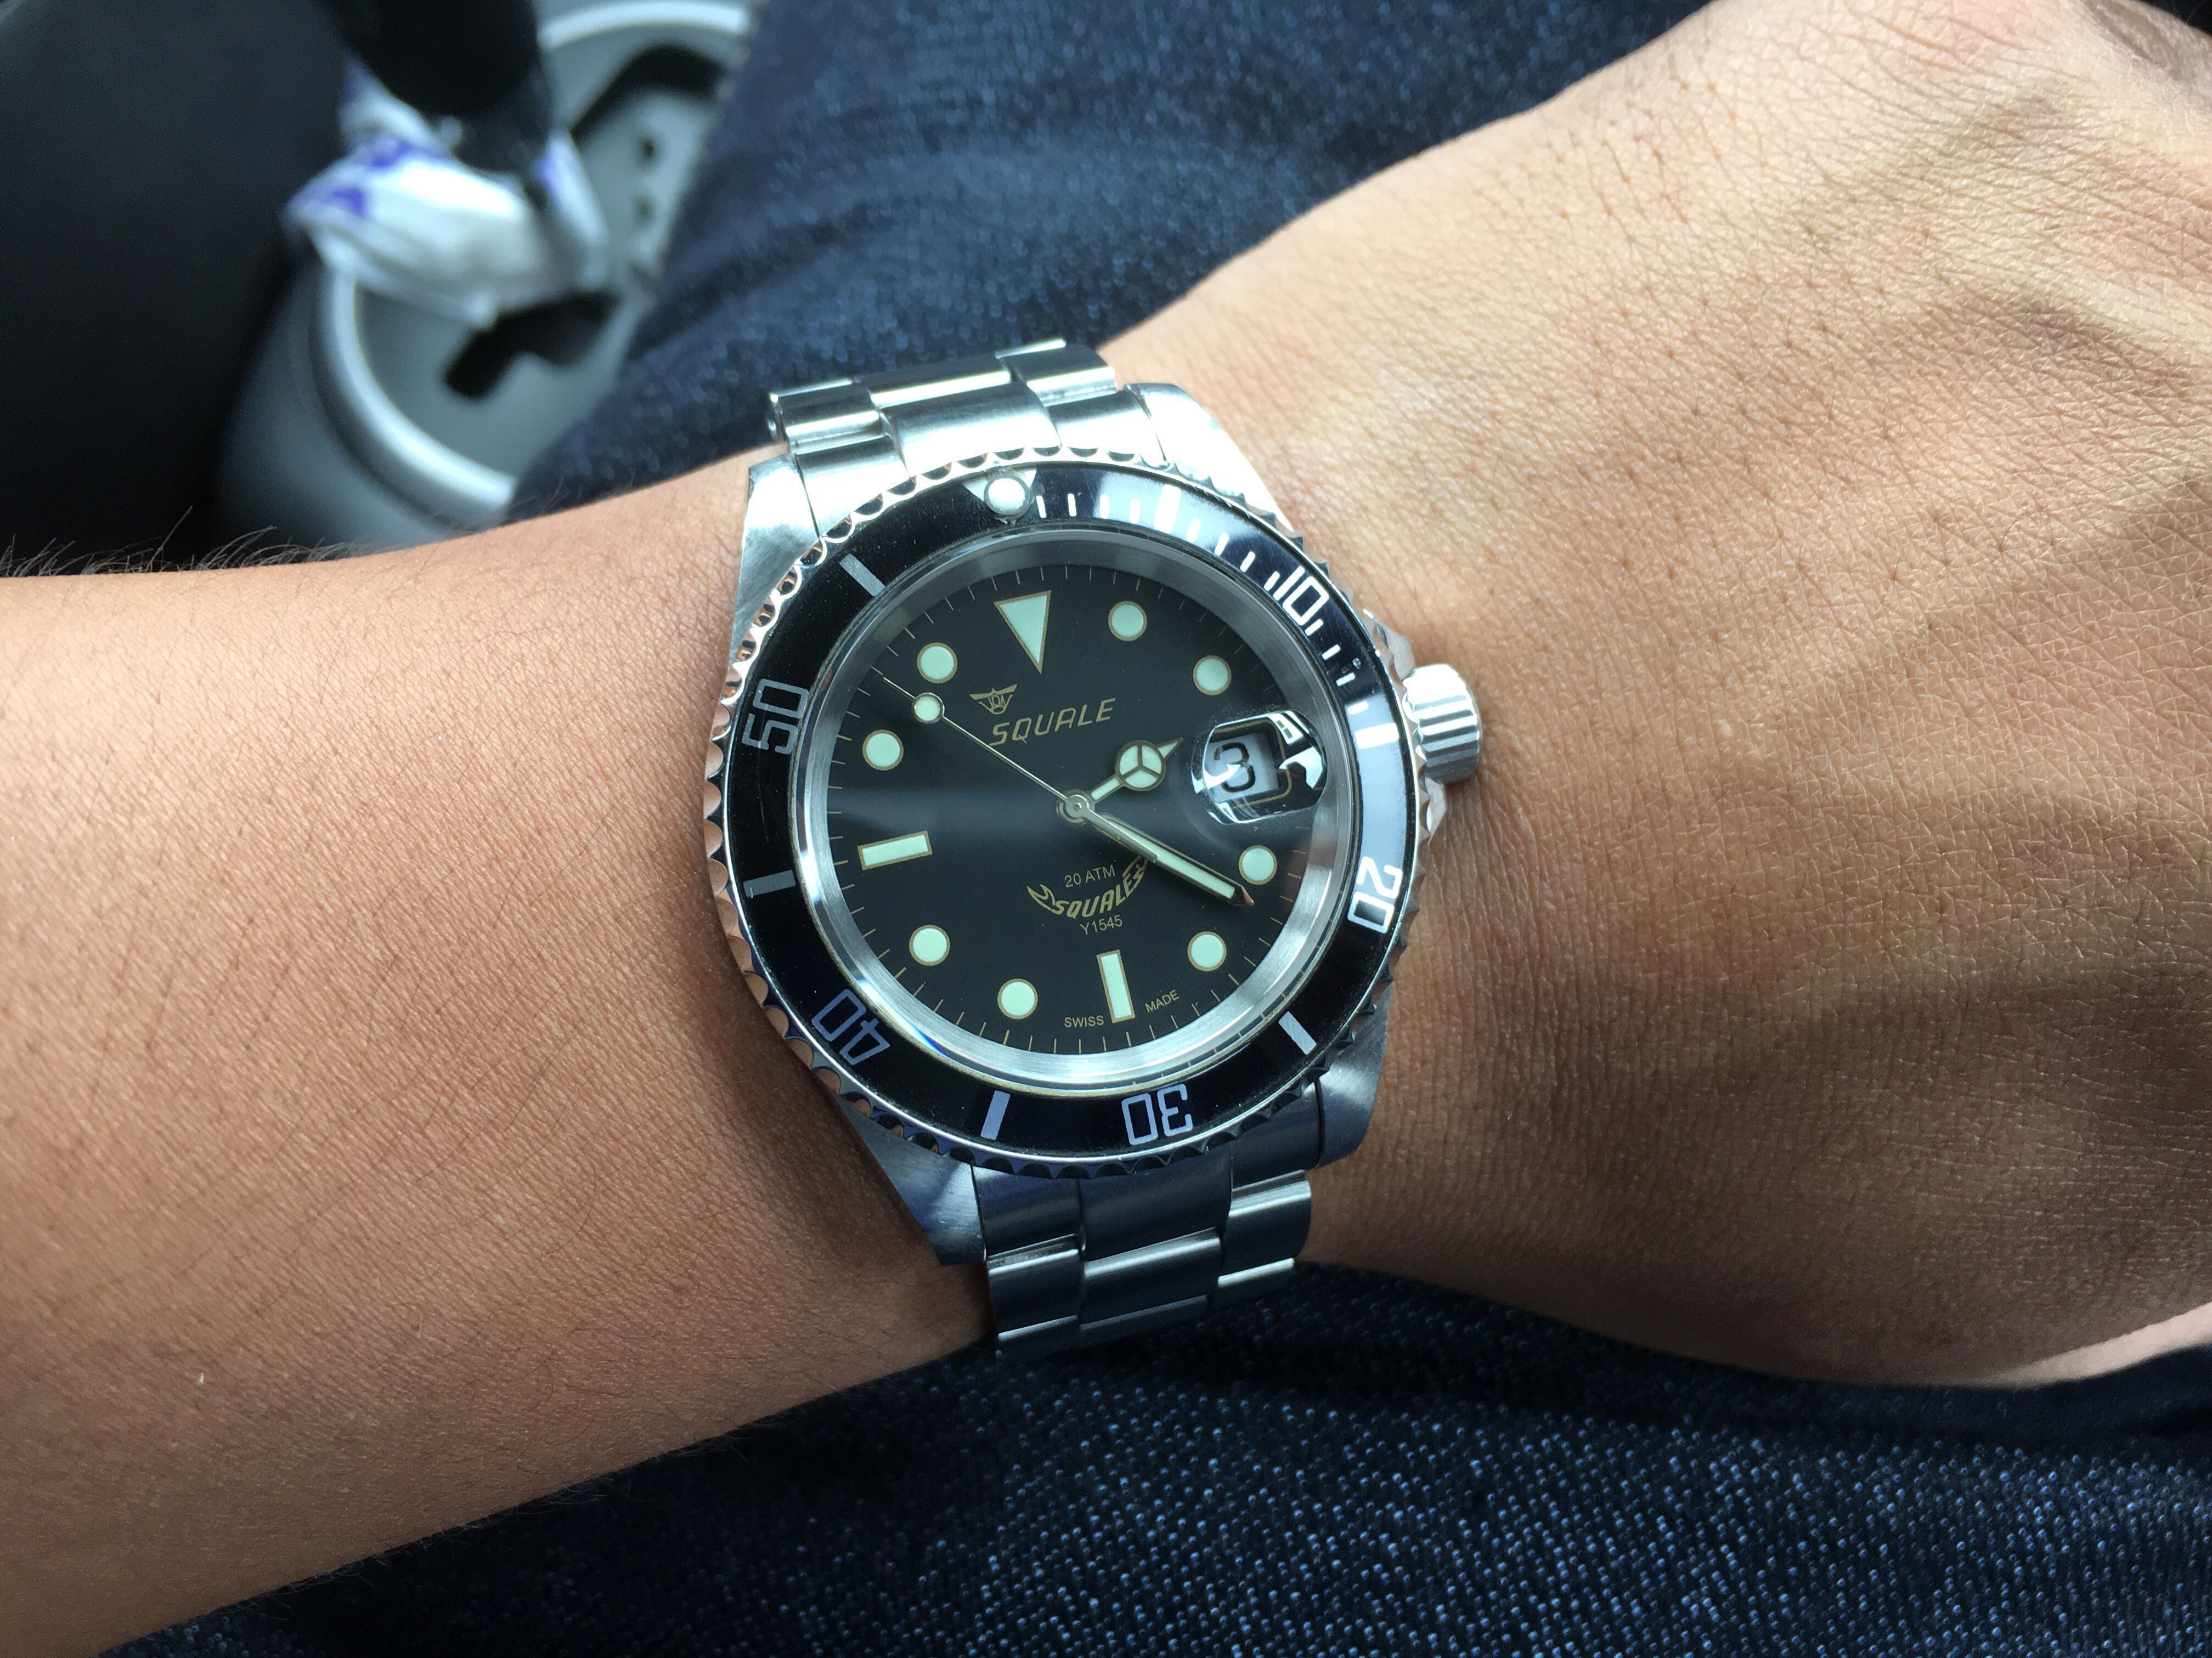 squale 20 atmos diver submariner watch jam men s fashion watches